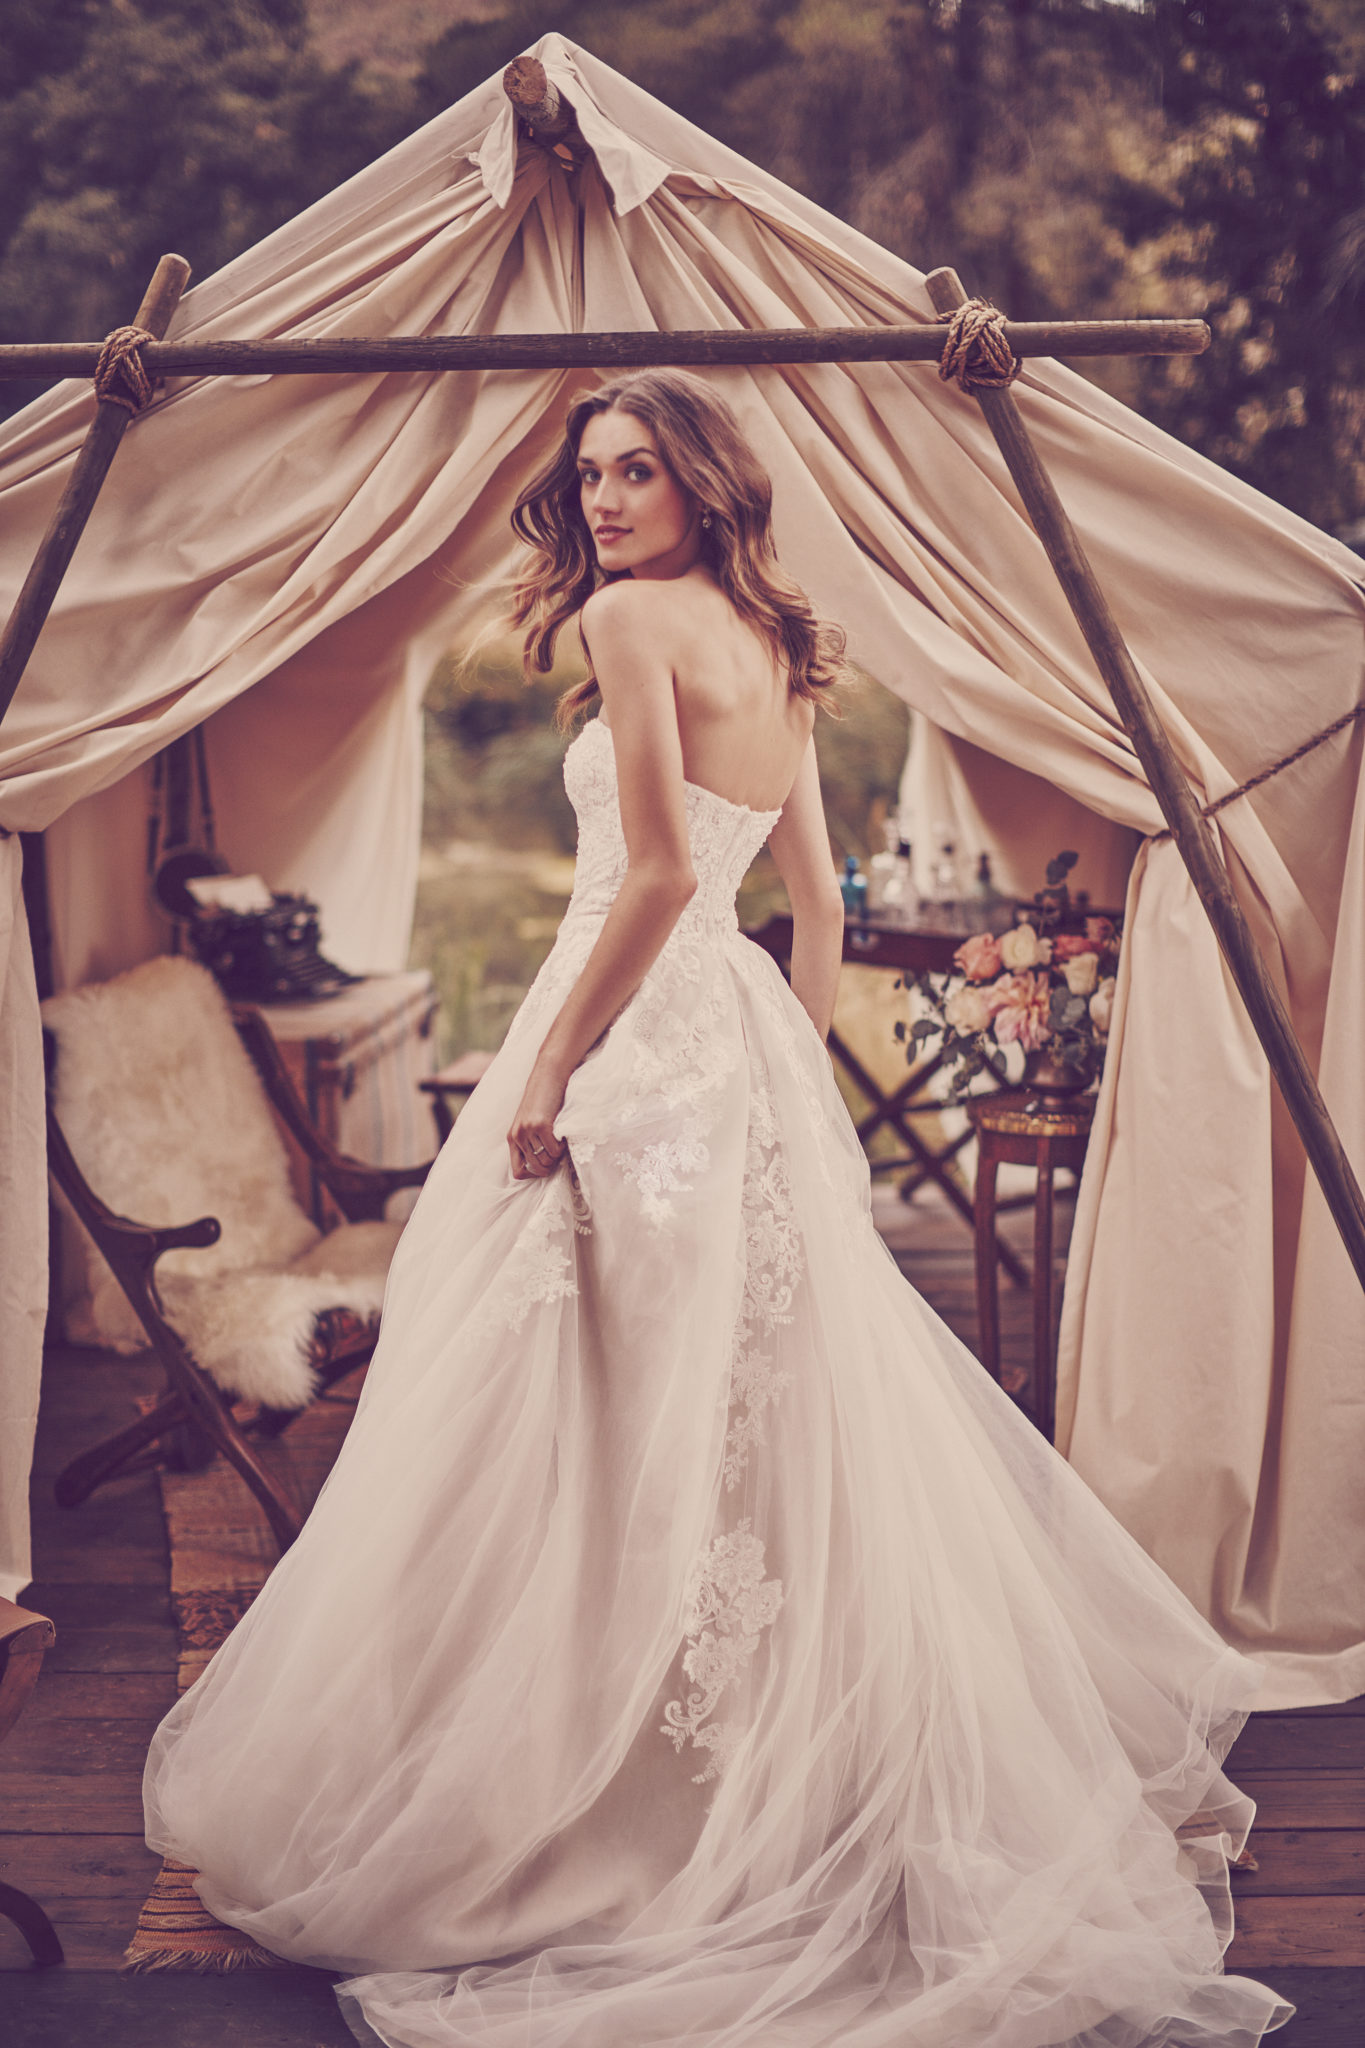 Bride in strapless ball gown wedding dress in front of rustic wedding tent